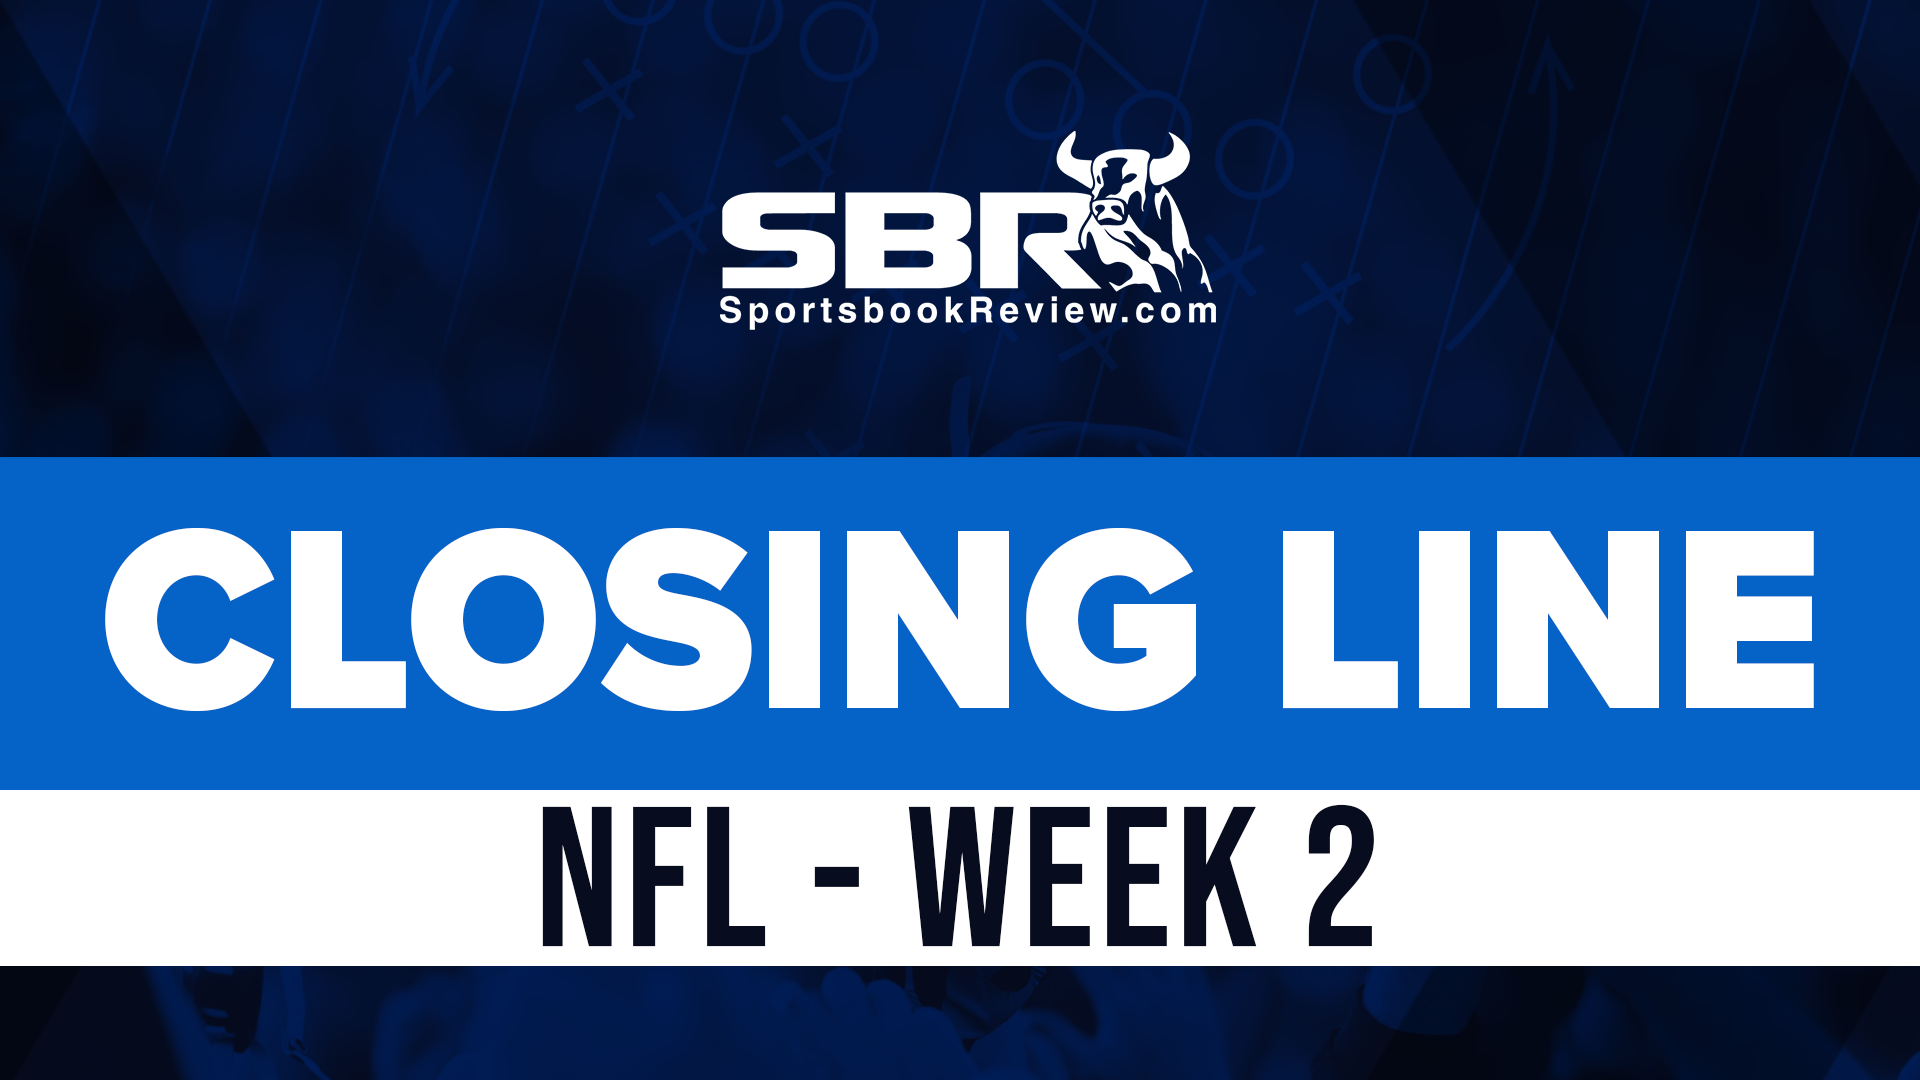 [WATCH] NFL Week 2 Closing Line: Game Picks and Predictions